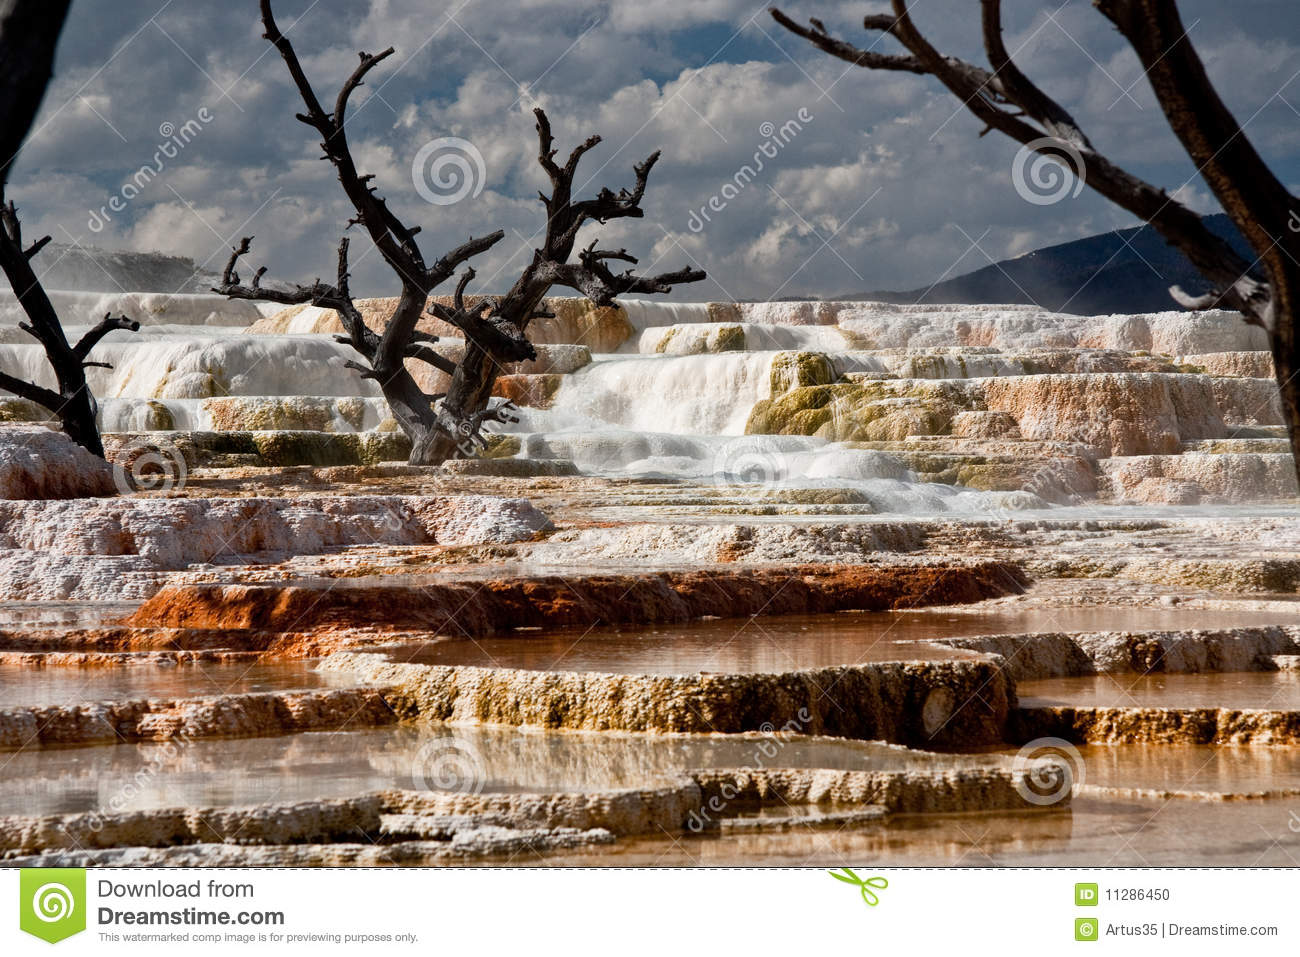 Mammoth Hot Springs At Yellowstone National Park 2 Stock Photo - Image ...